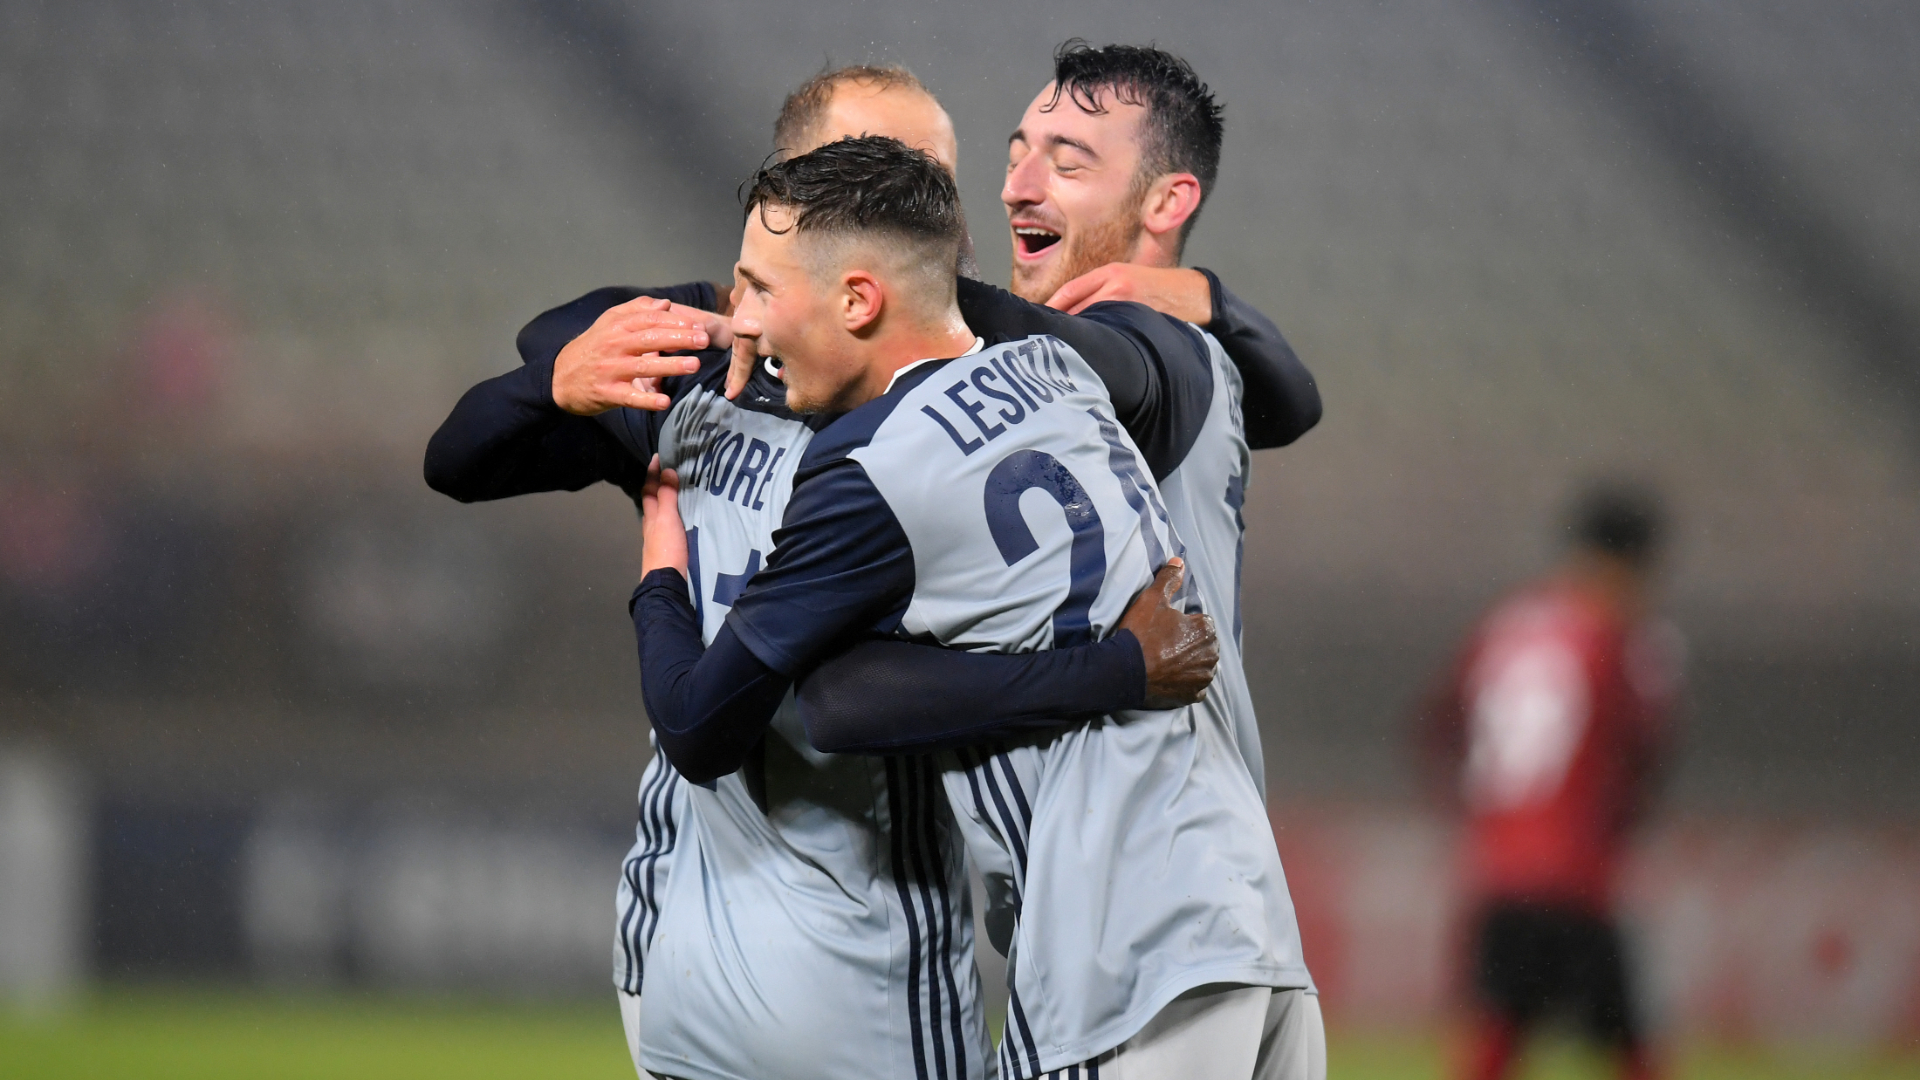 A-League and Australian football news LIVE: Melbourne Victory shock Kashima to qualify for Asian Champions League